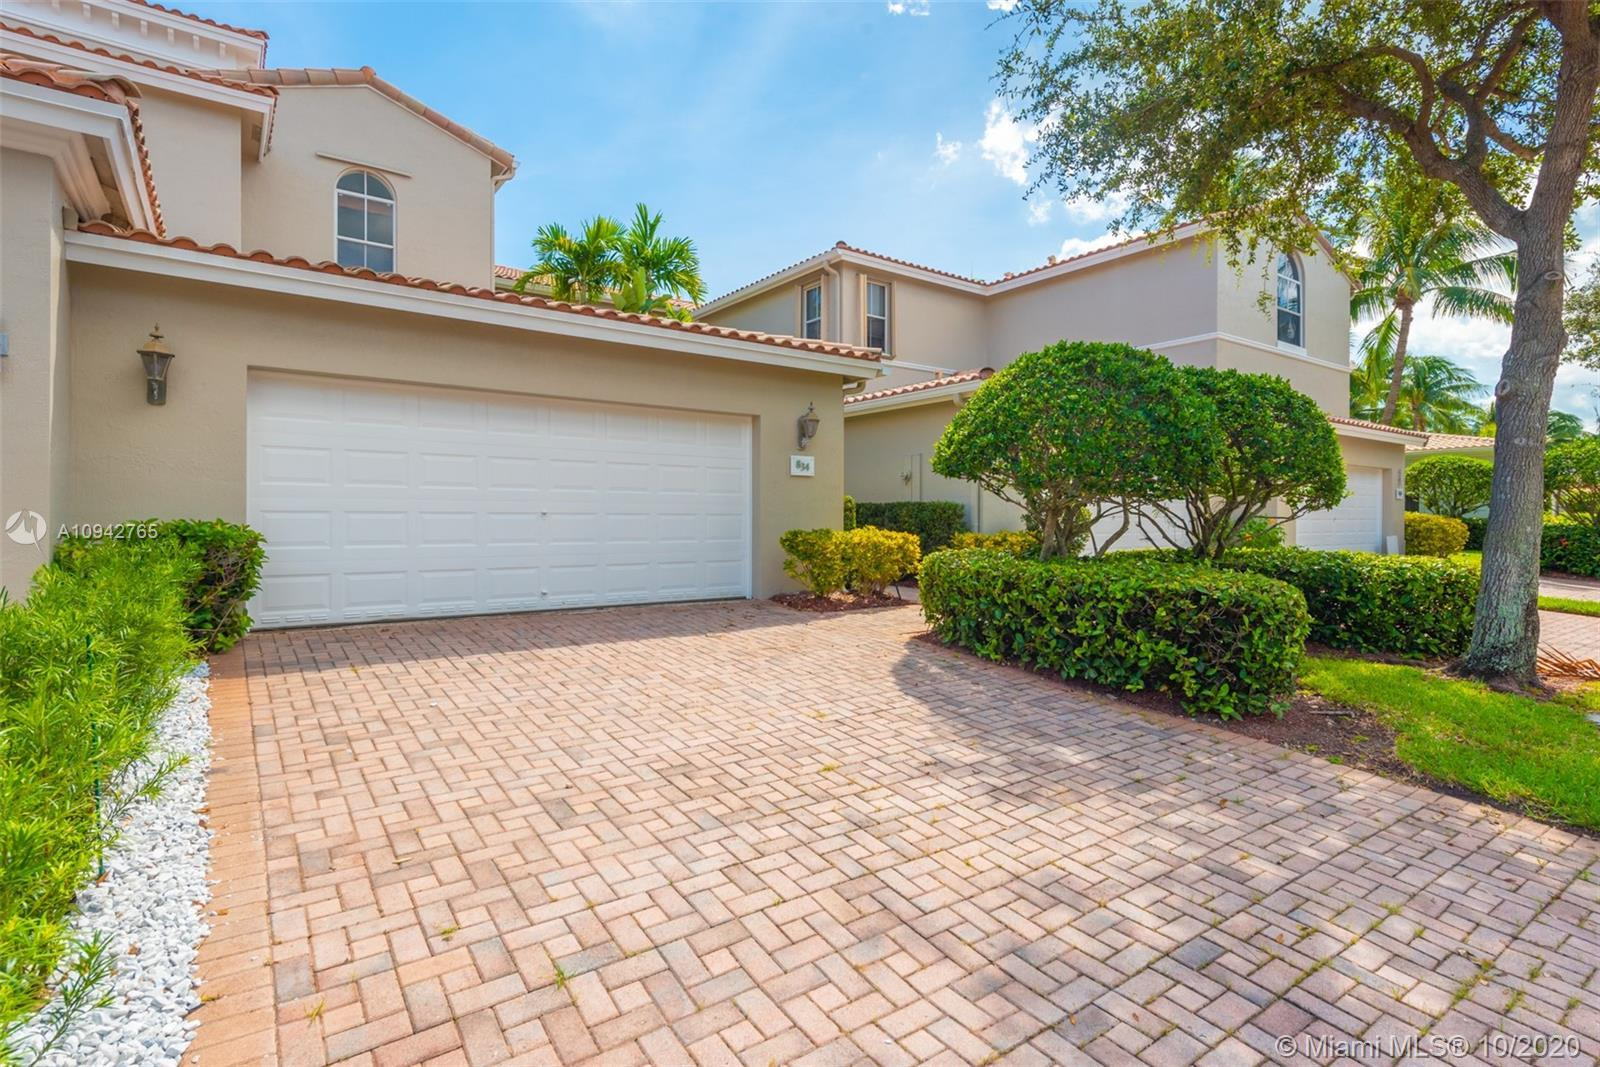 Two-story townhome located in the sought after waterfront community of Harbor Islands.  This Townhom